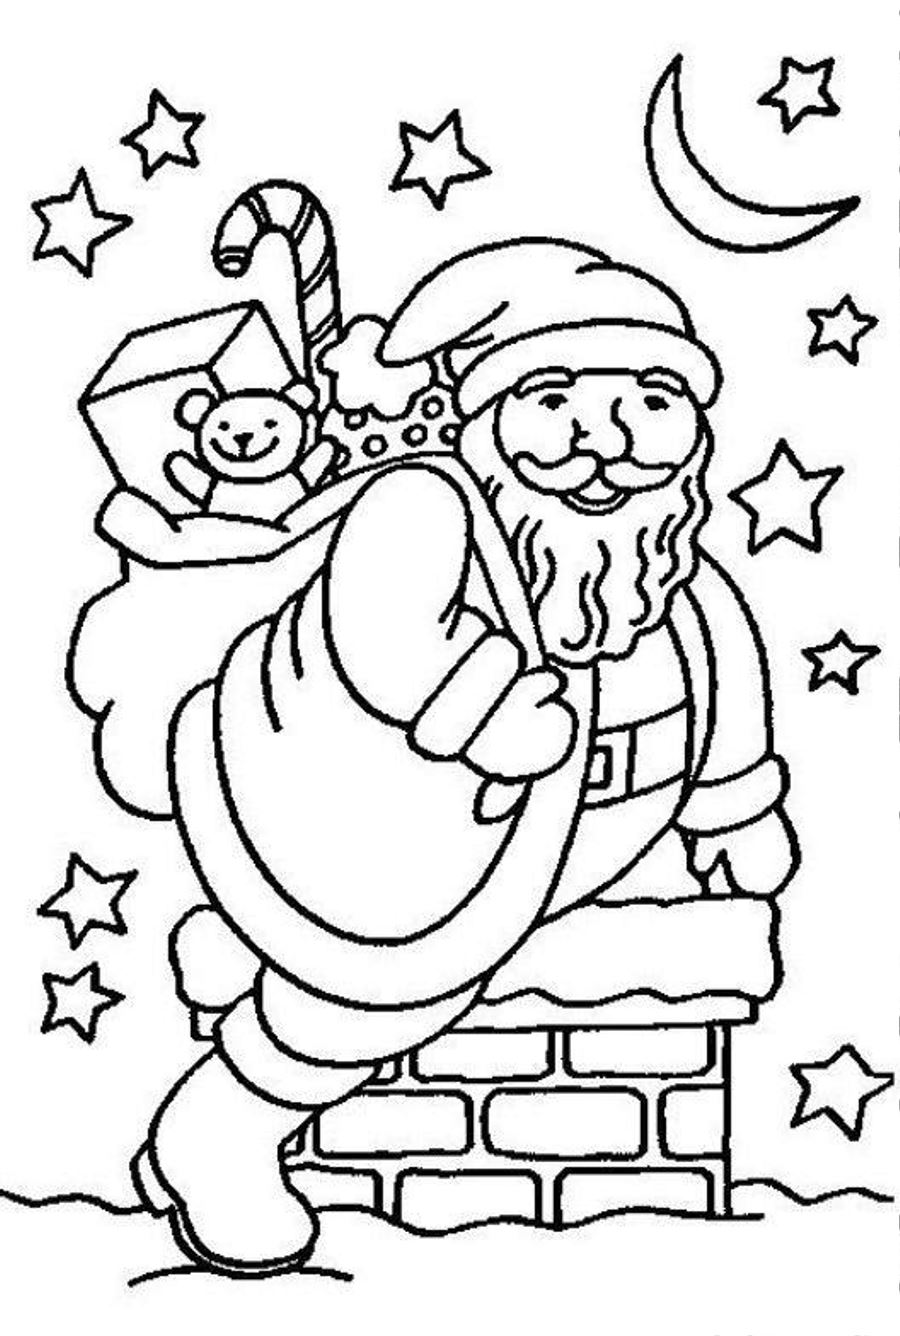 santa claus printable coloring pages craftsactvities and worksheets for preschooltoddler and pages printable santa claus coloring